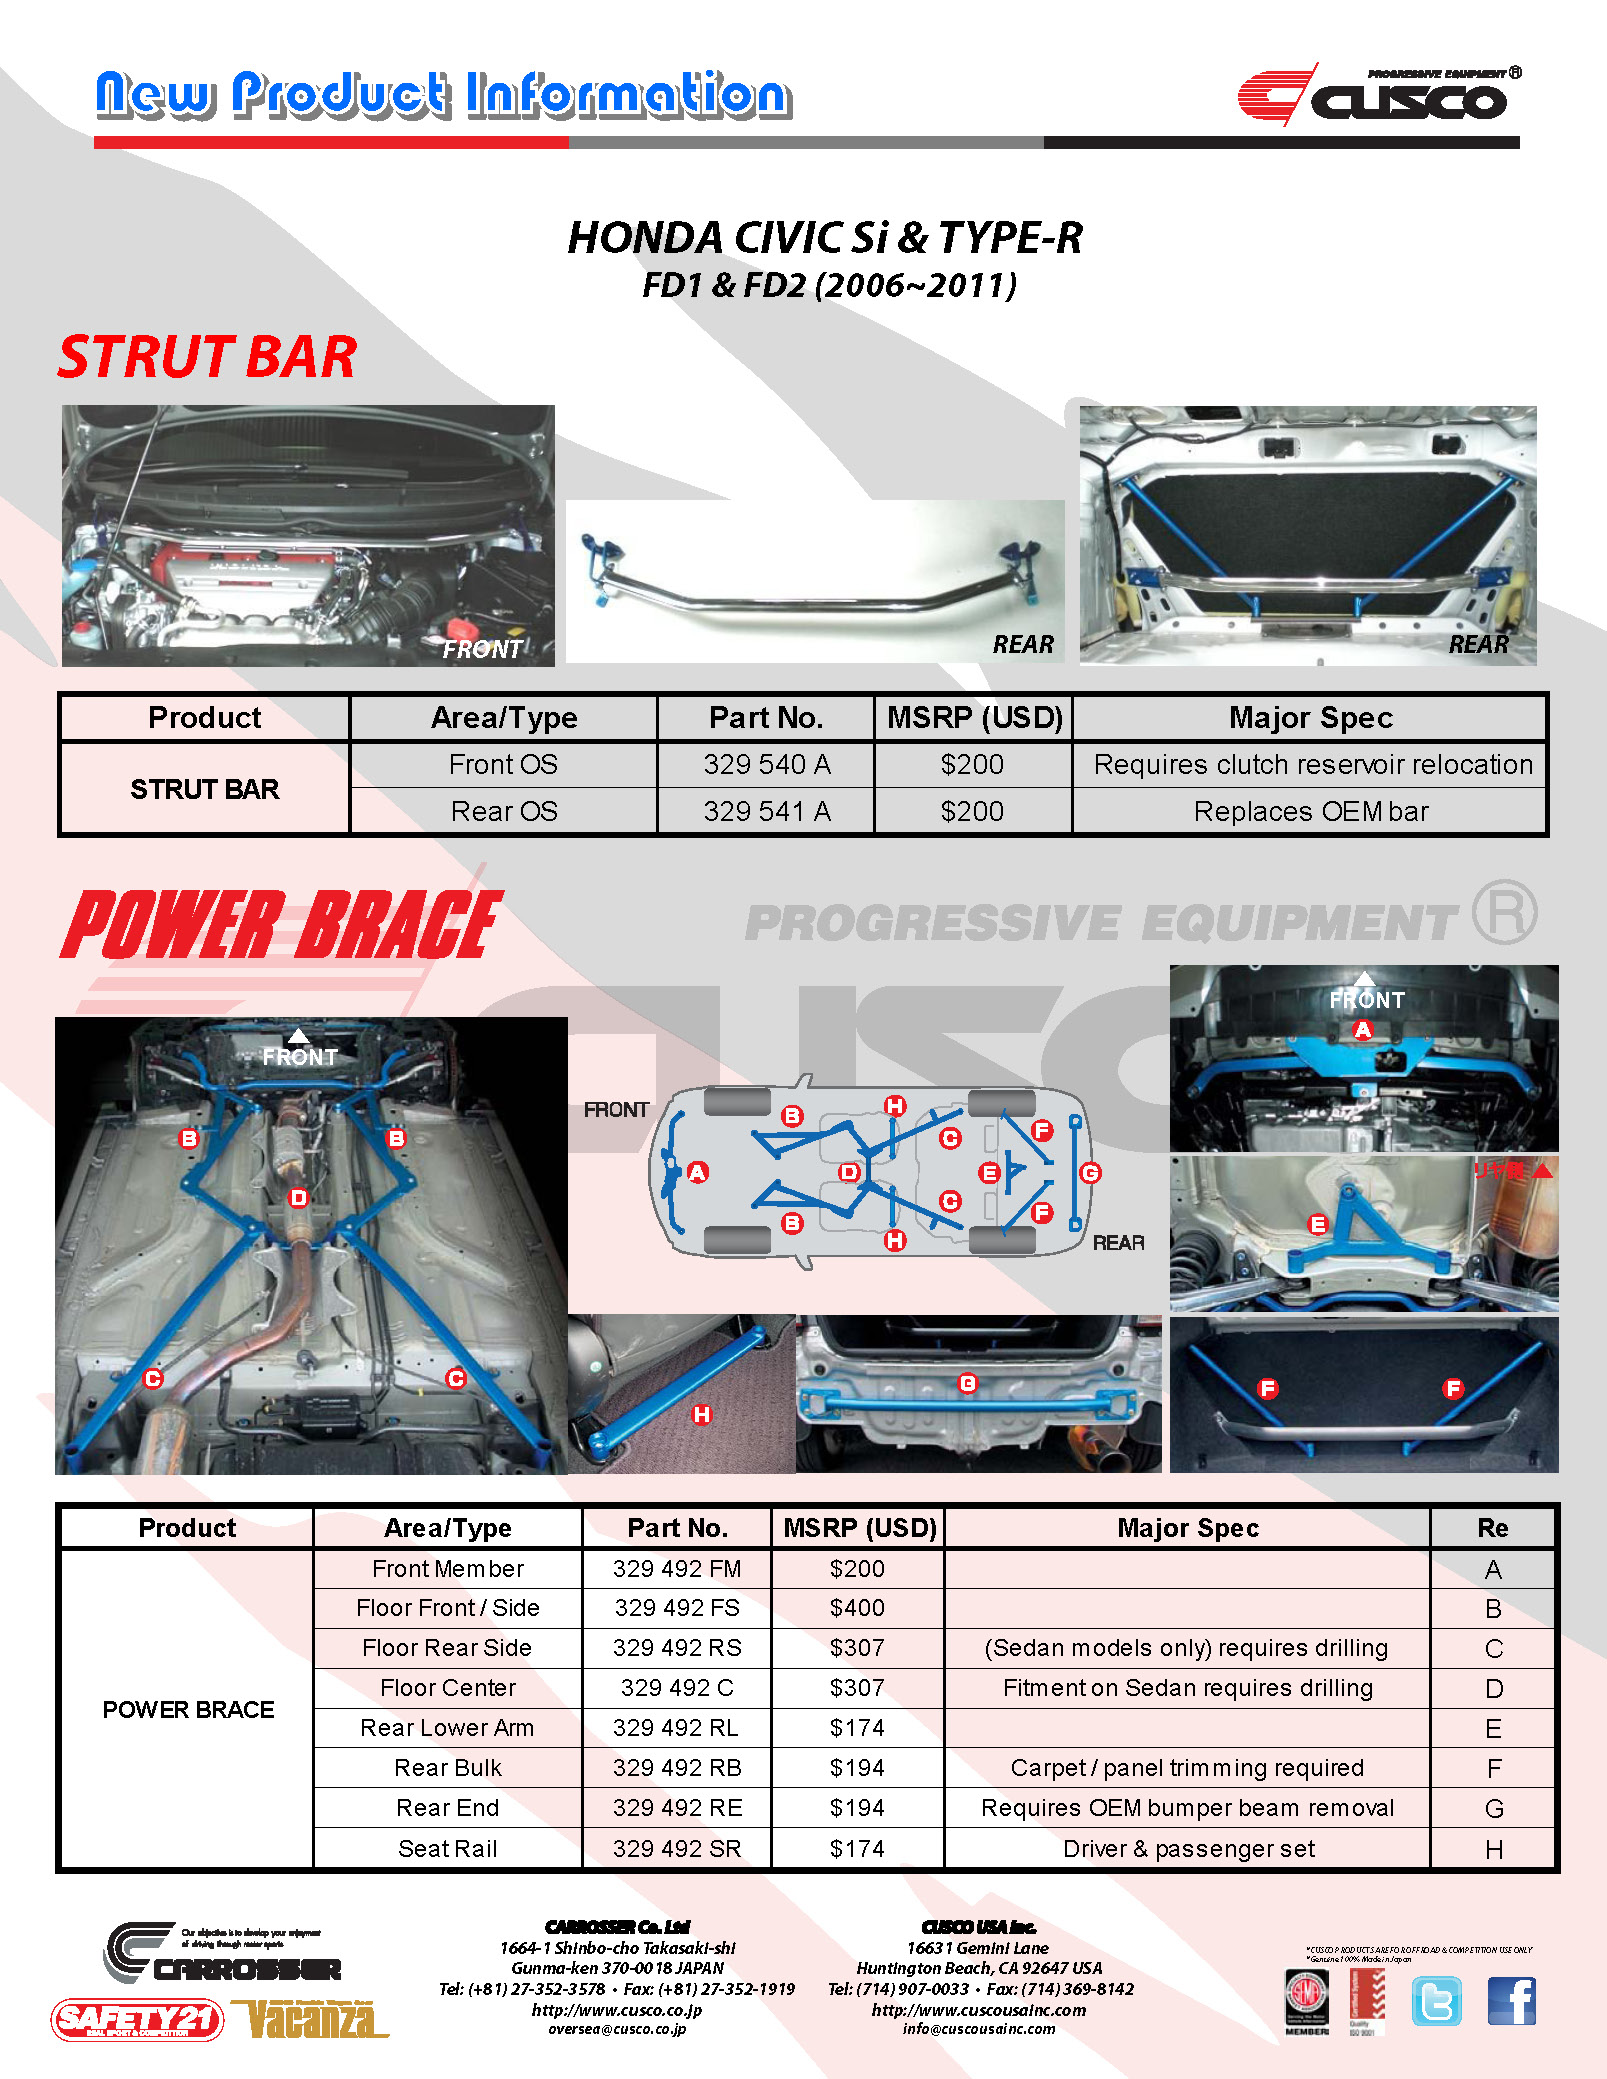 Honda Civic Si & Type-R FD1 / FD2 Chassis Products